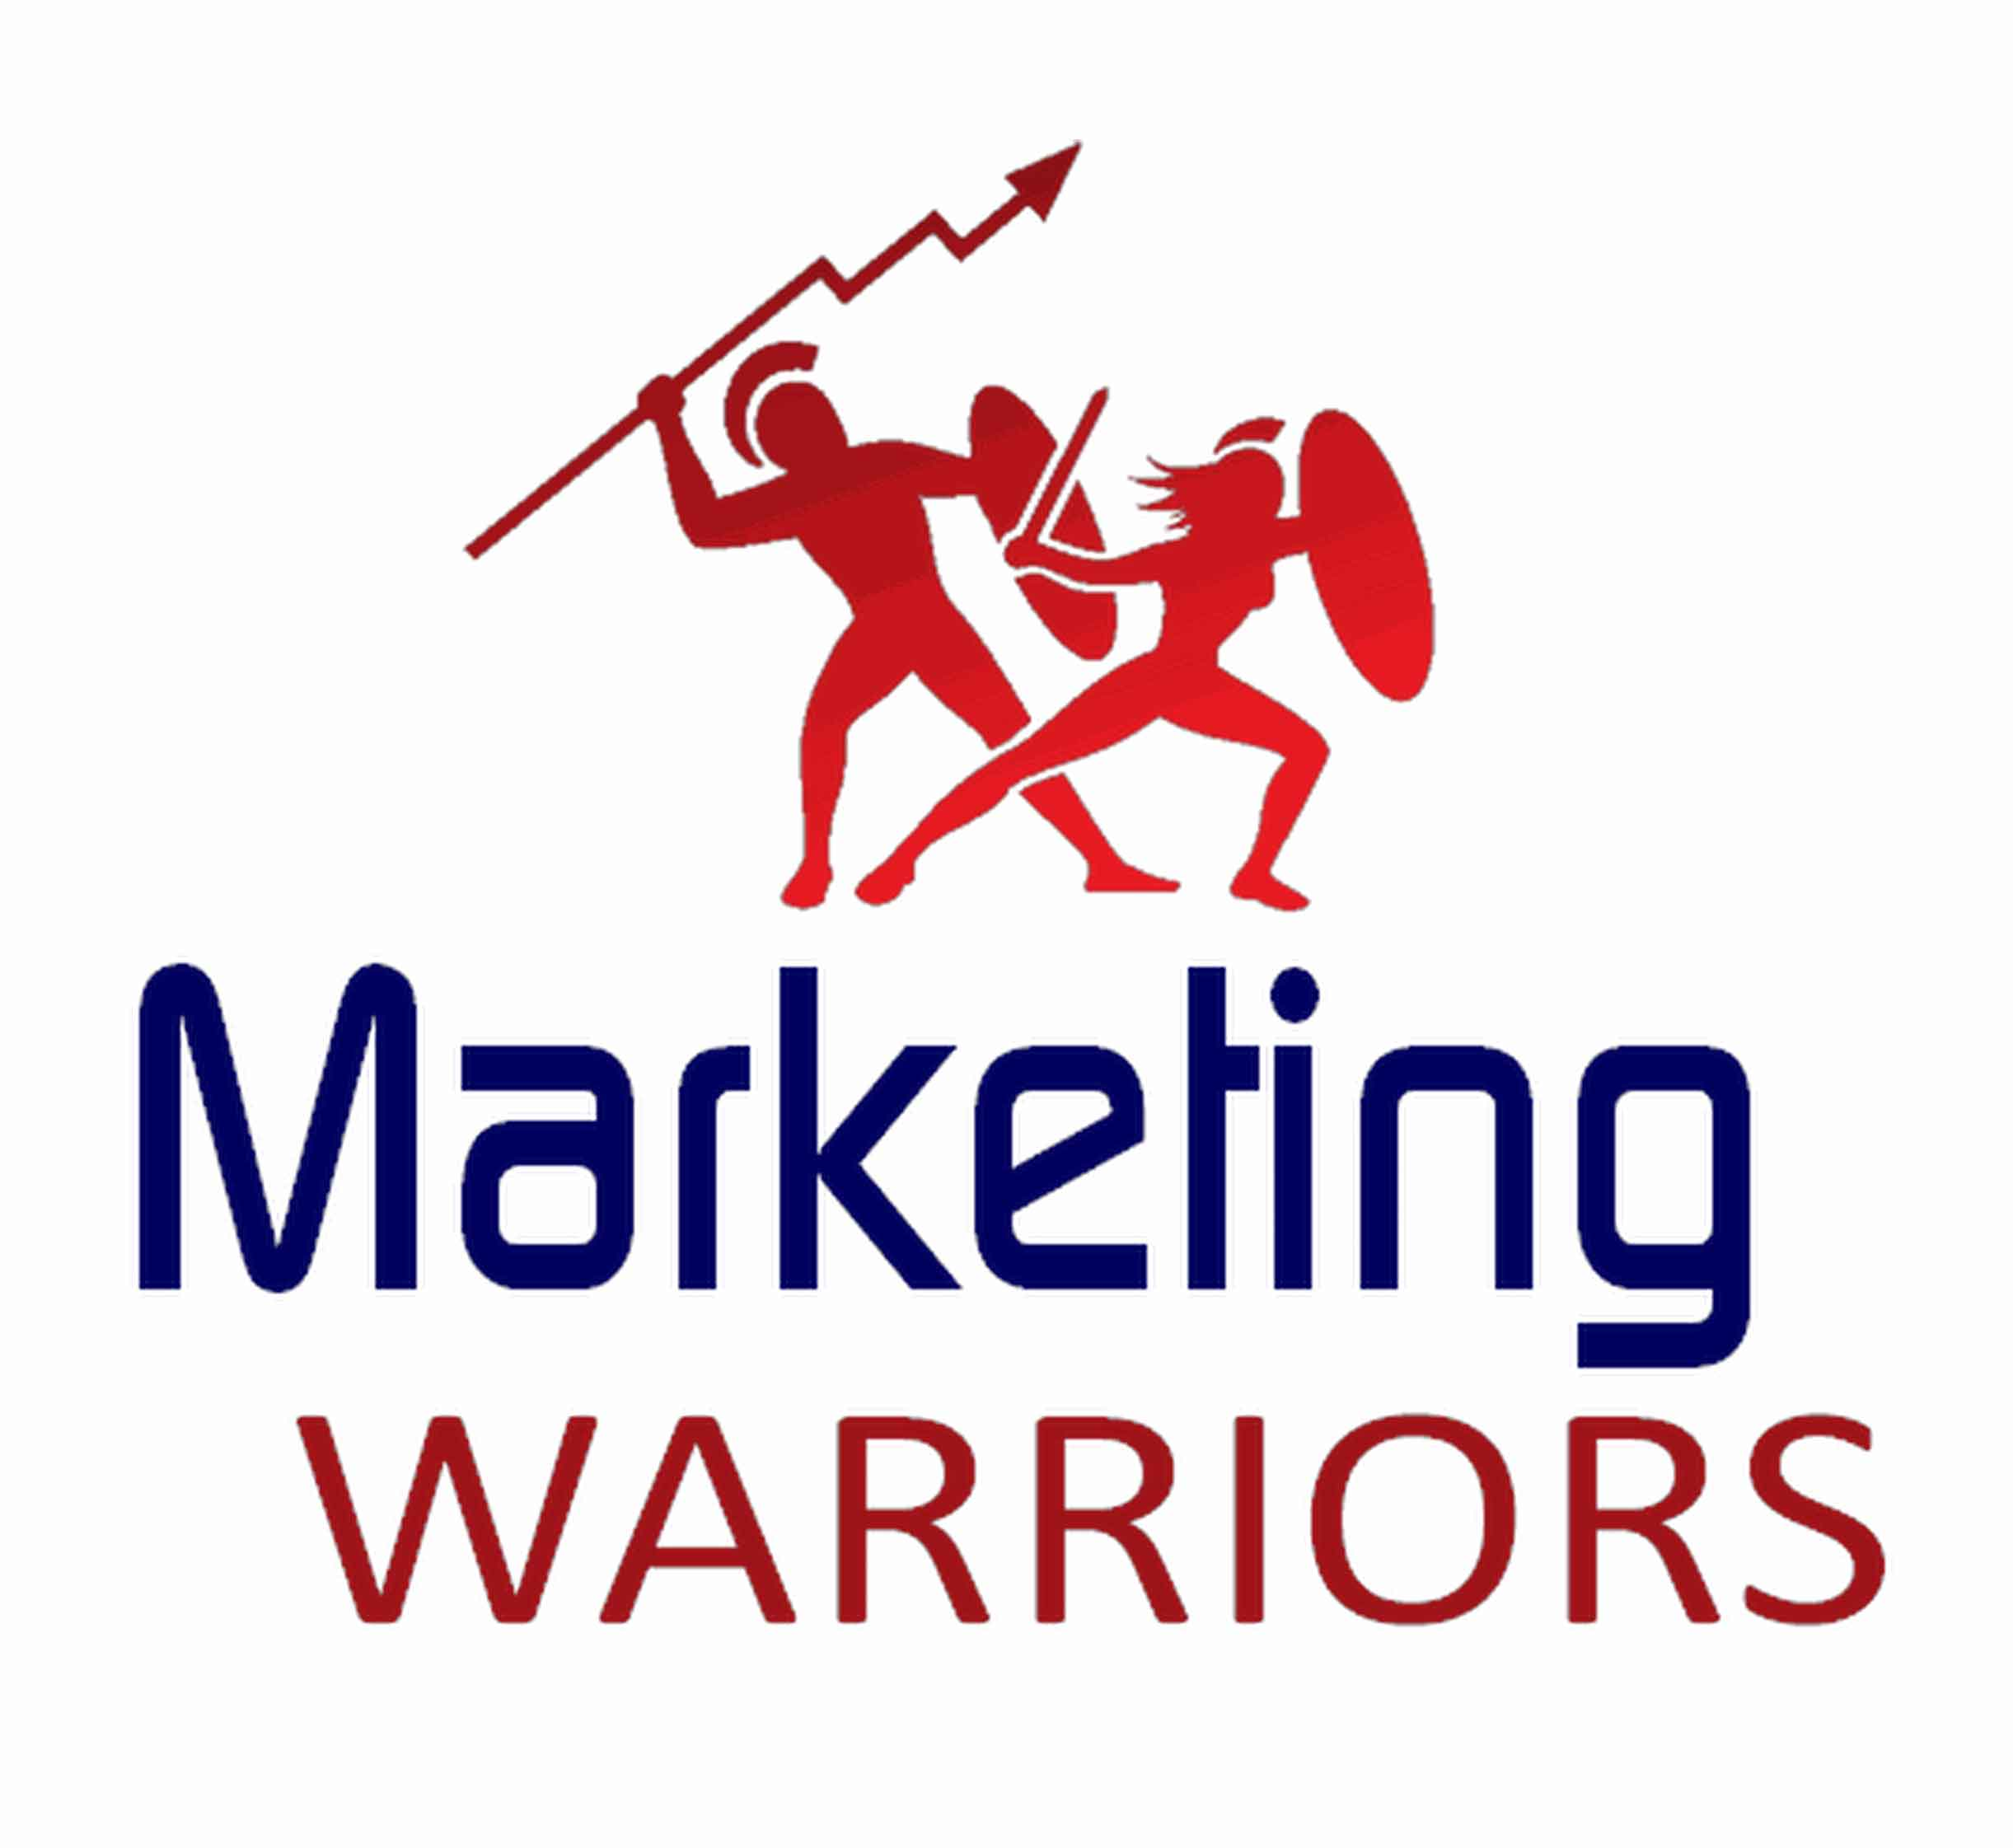 Marketing Warriors, logo by New Paradigm graphic design, Santa Rosa, CA